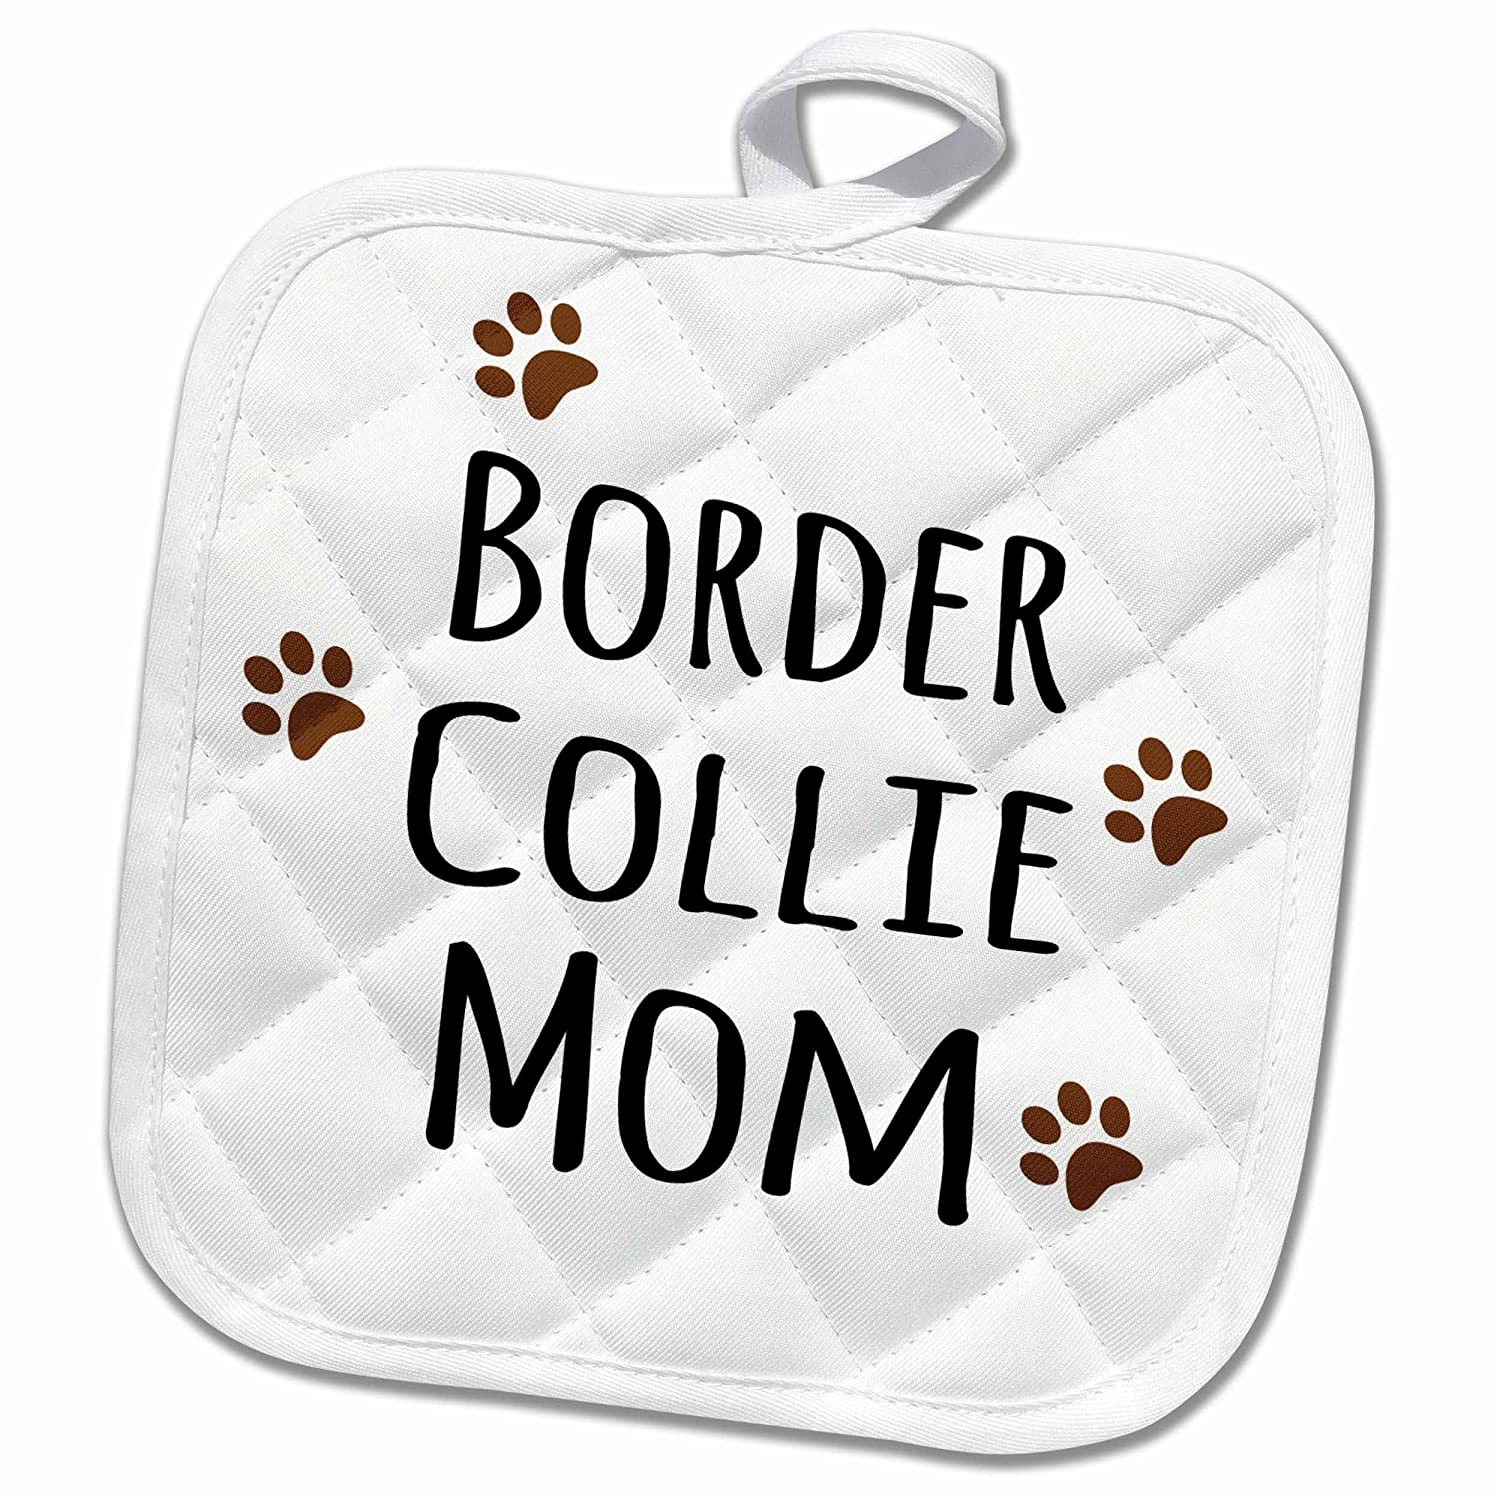 Kitchen Accessories 3d Rose Cavapoo Dog Mom Breed Brown Muddy Paw Prints Love Doggy Lover Proud Mama Pet Owner Pot Holder 8 X 8 Pot Holders Oven Mitts